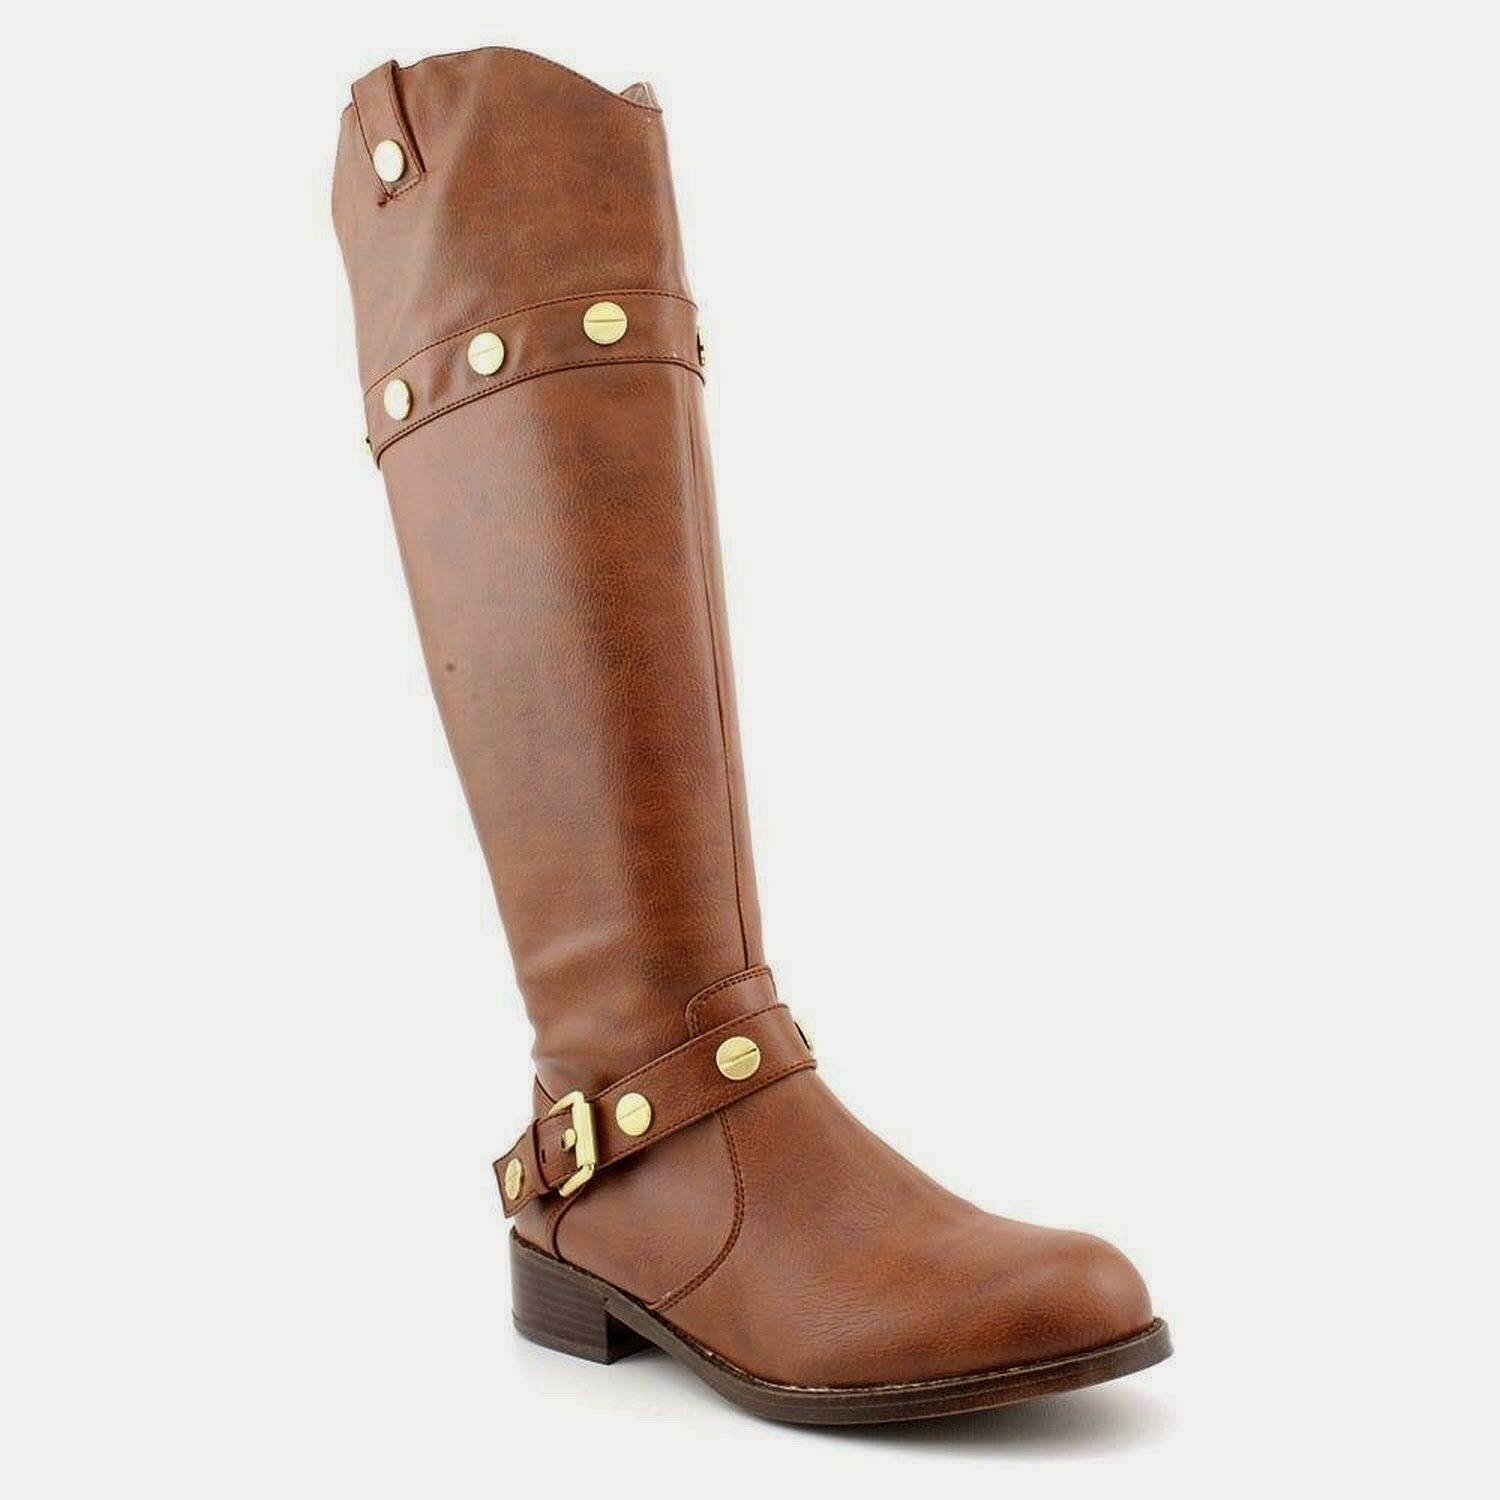 NEW International Concepts INC Marty Leather Knee High Riding bottes Taille 8 marron